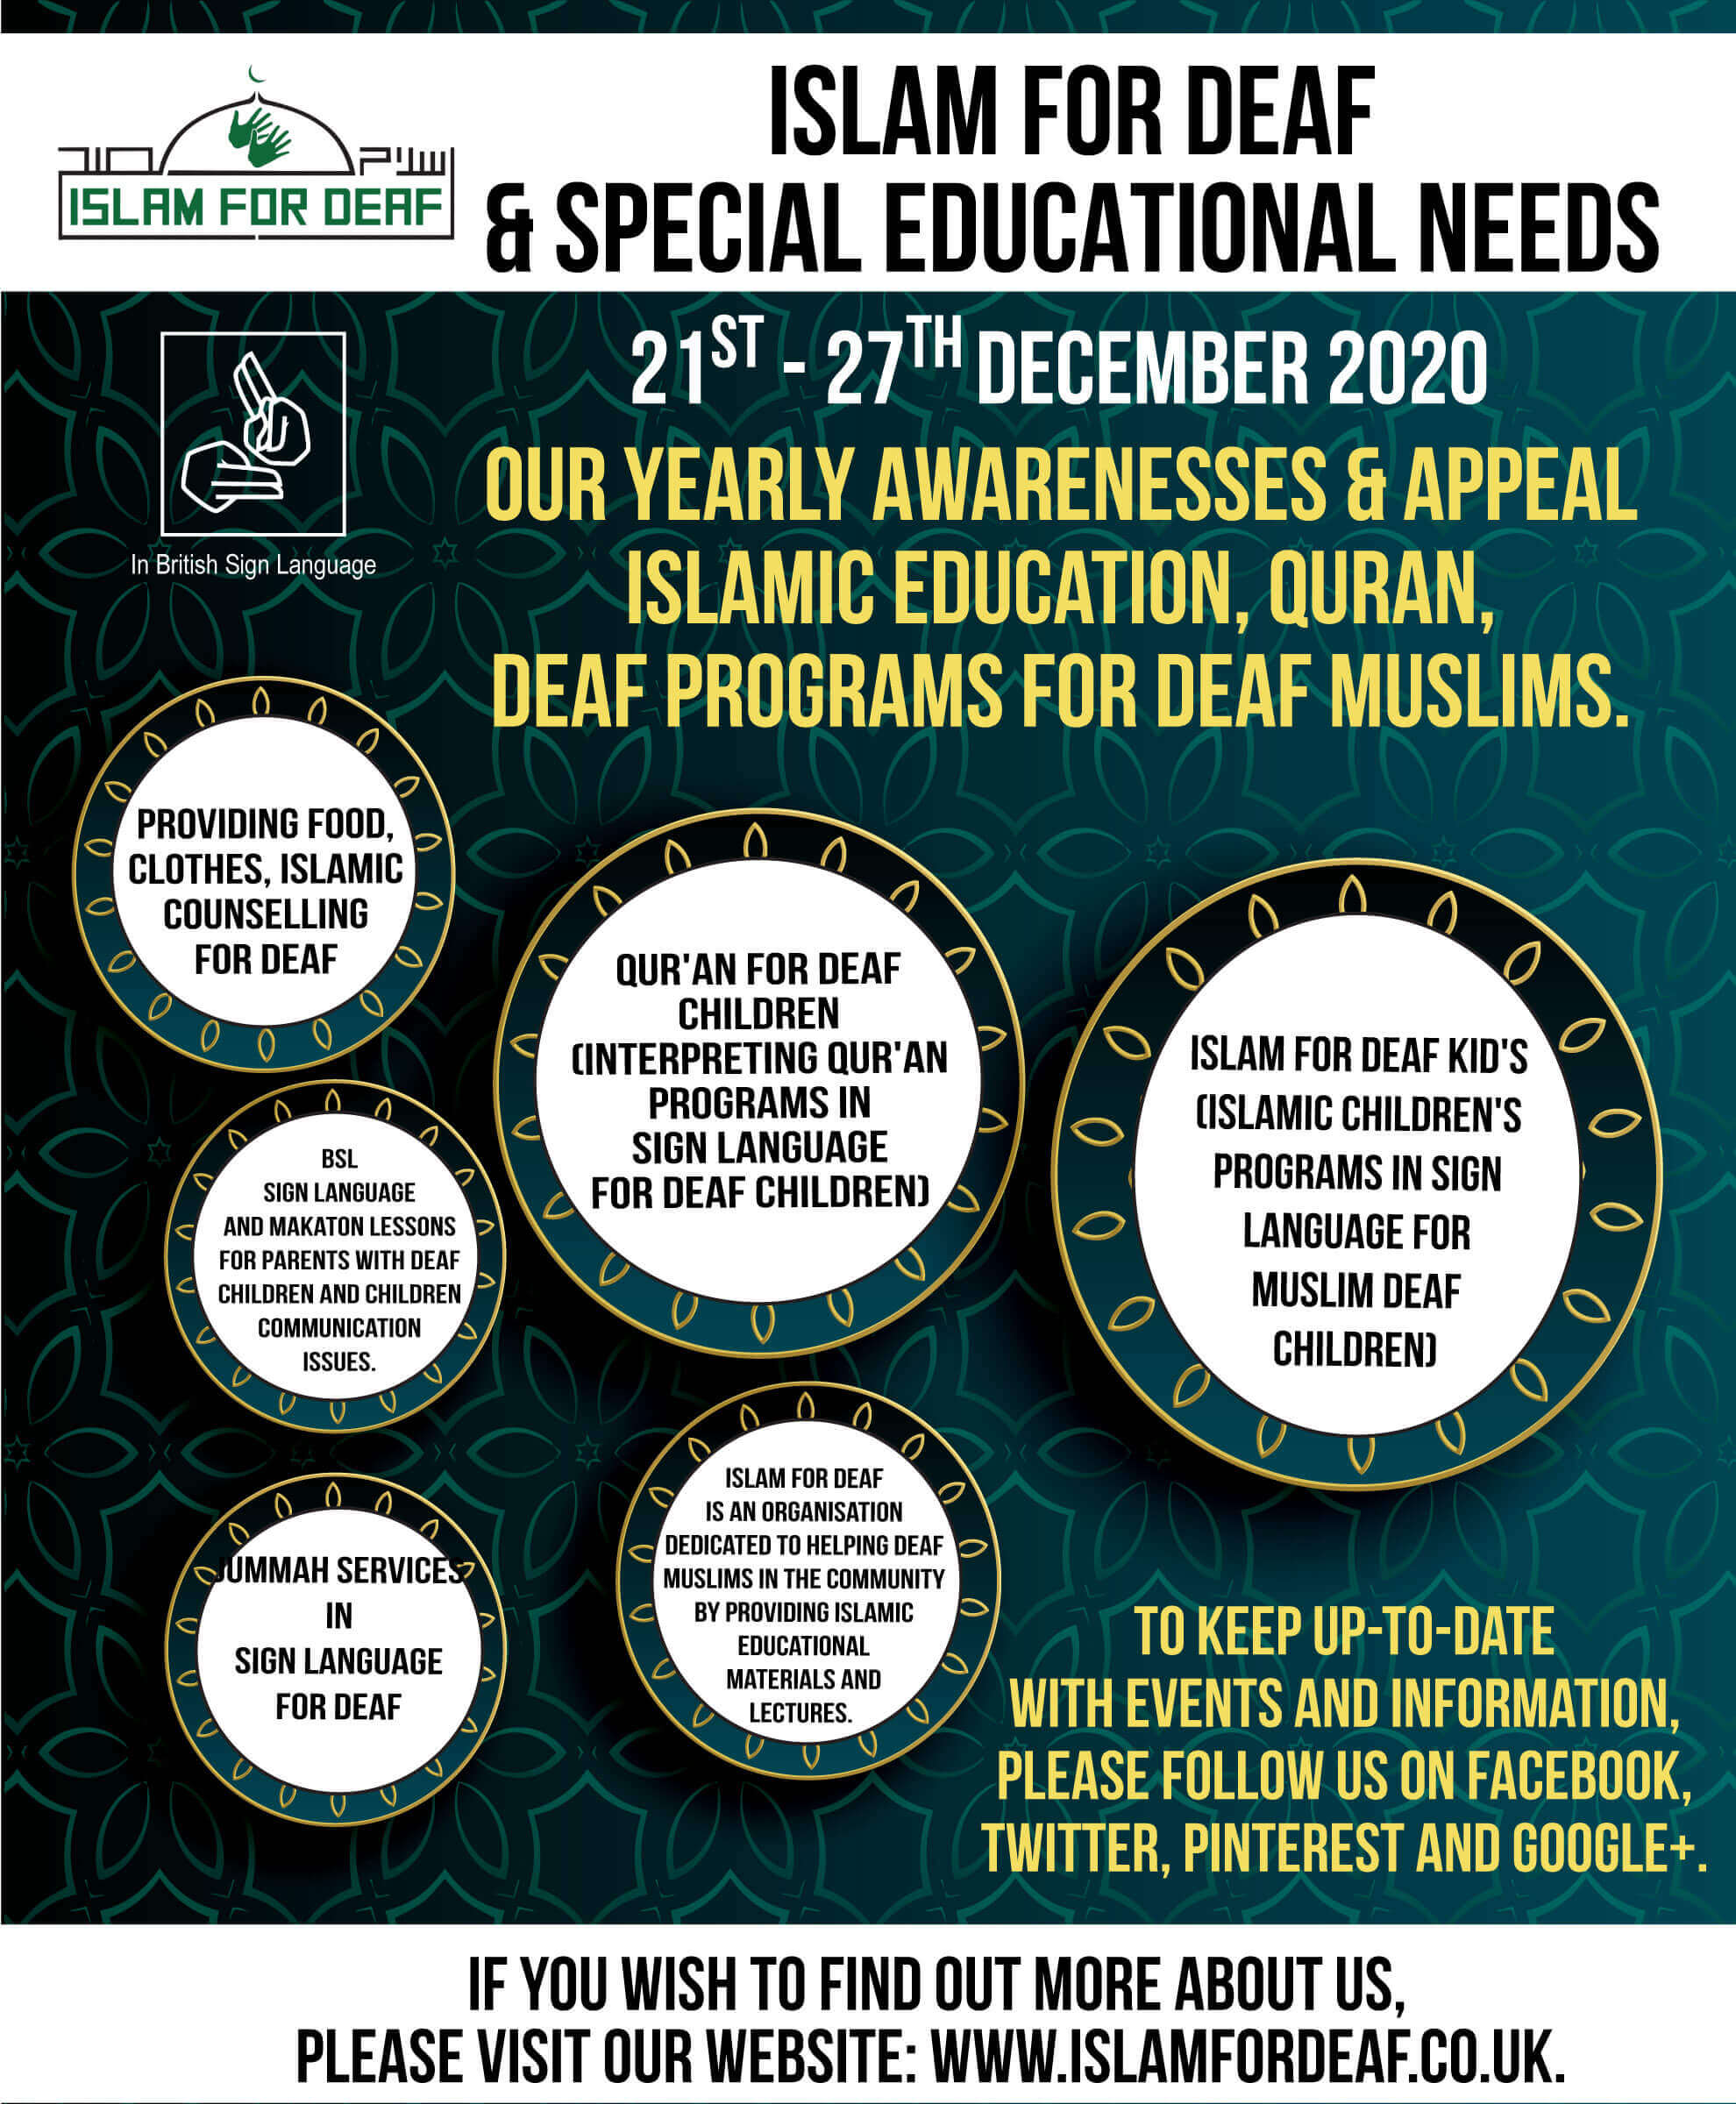 Islam for Deaf & Special Educational Needs